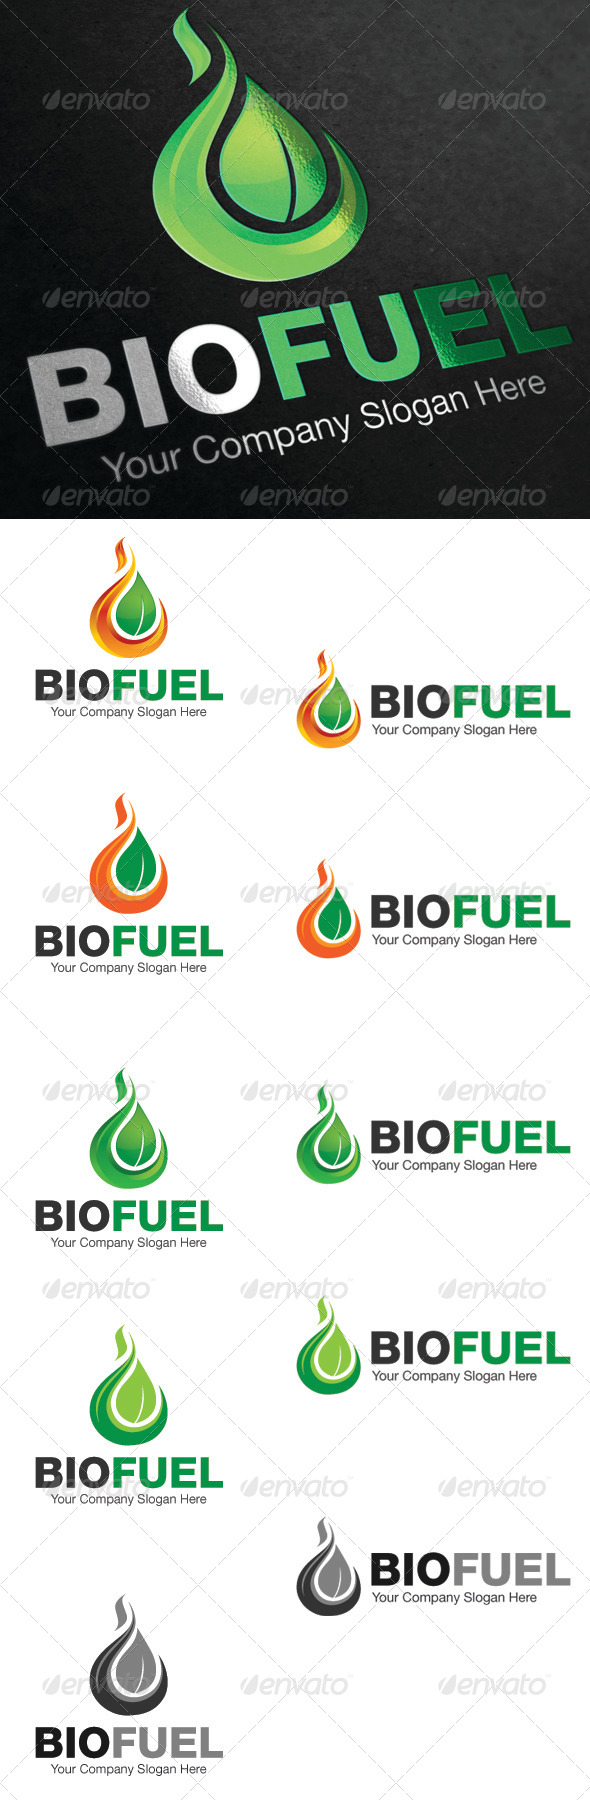 GraphicRiver Bio Fuel 5225353